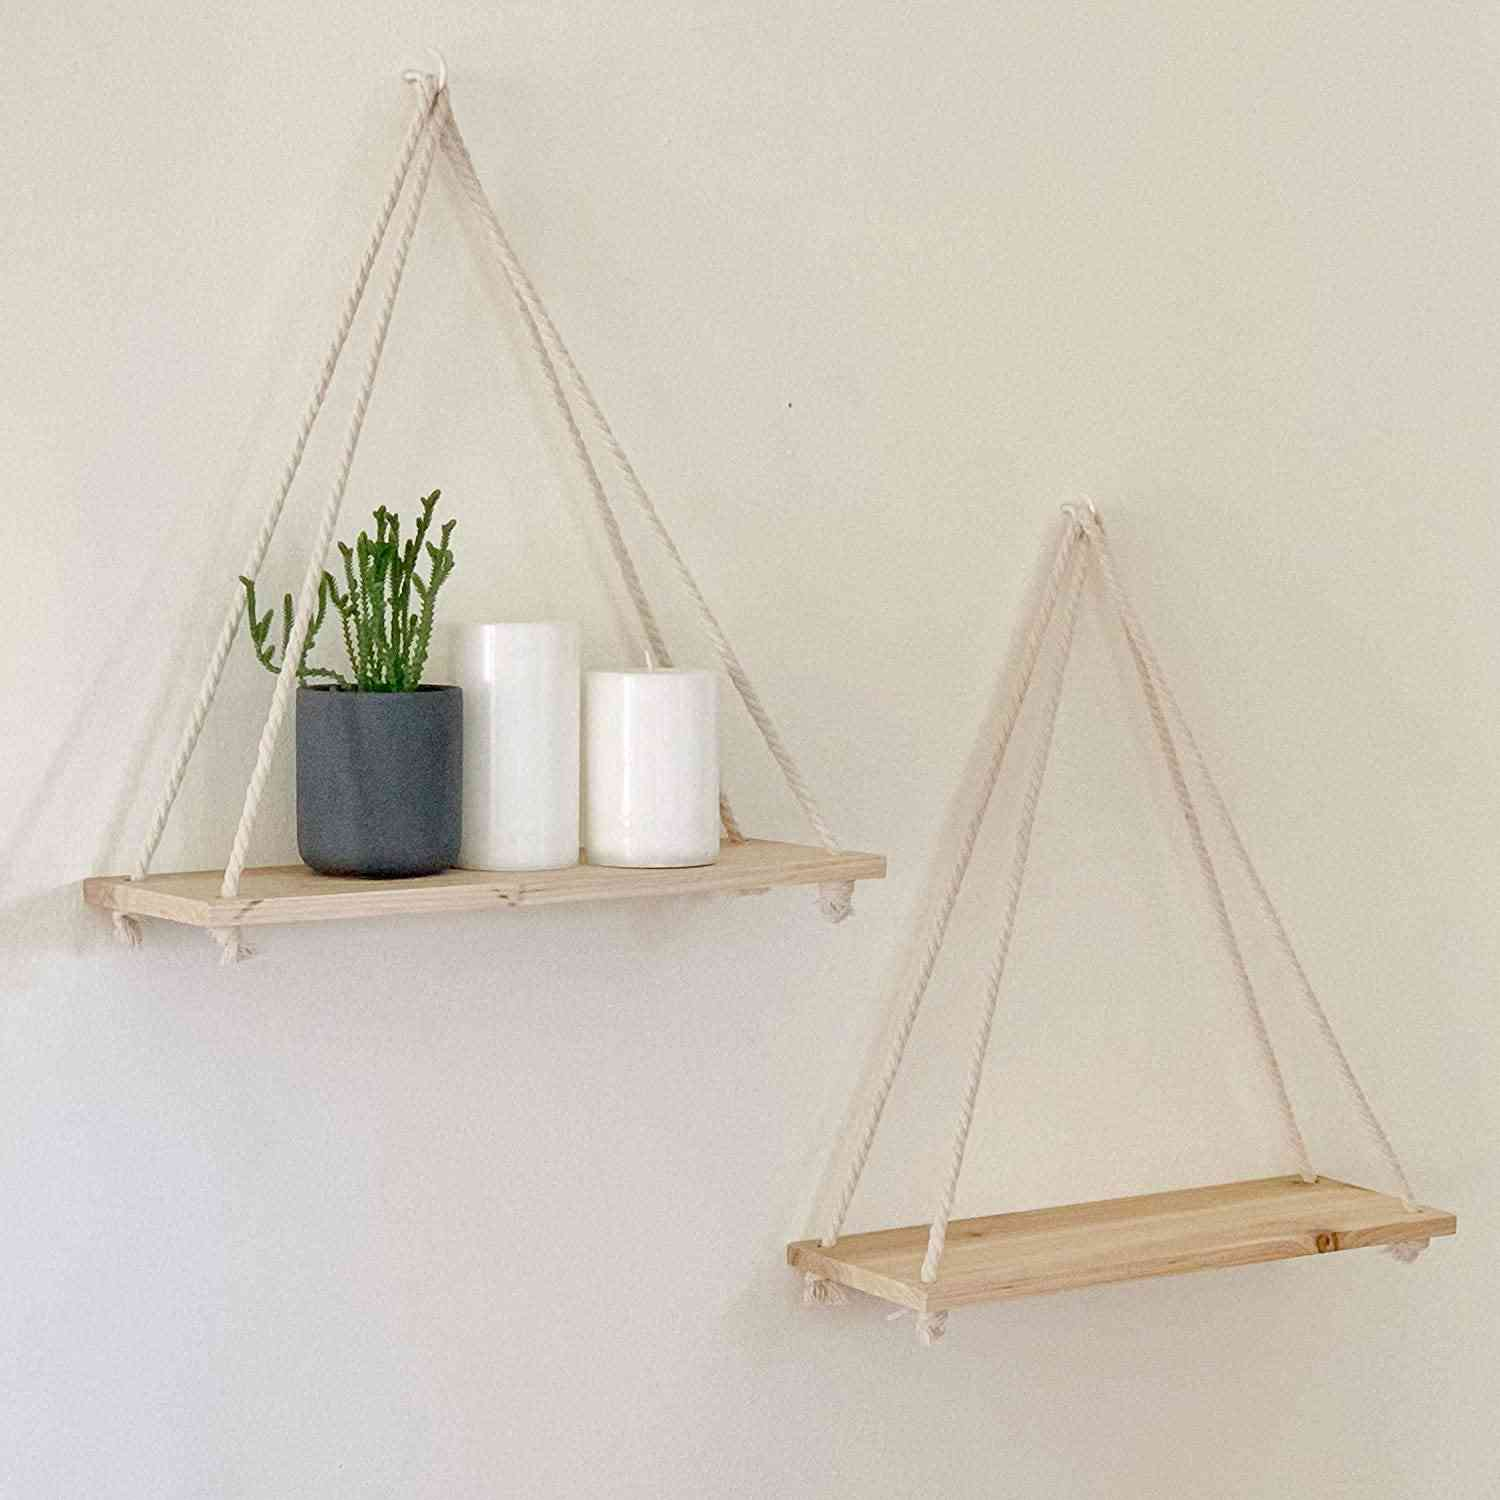 Wooden Rope Swing Wall Hanging Plant Flower Pot Tray